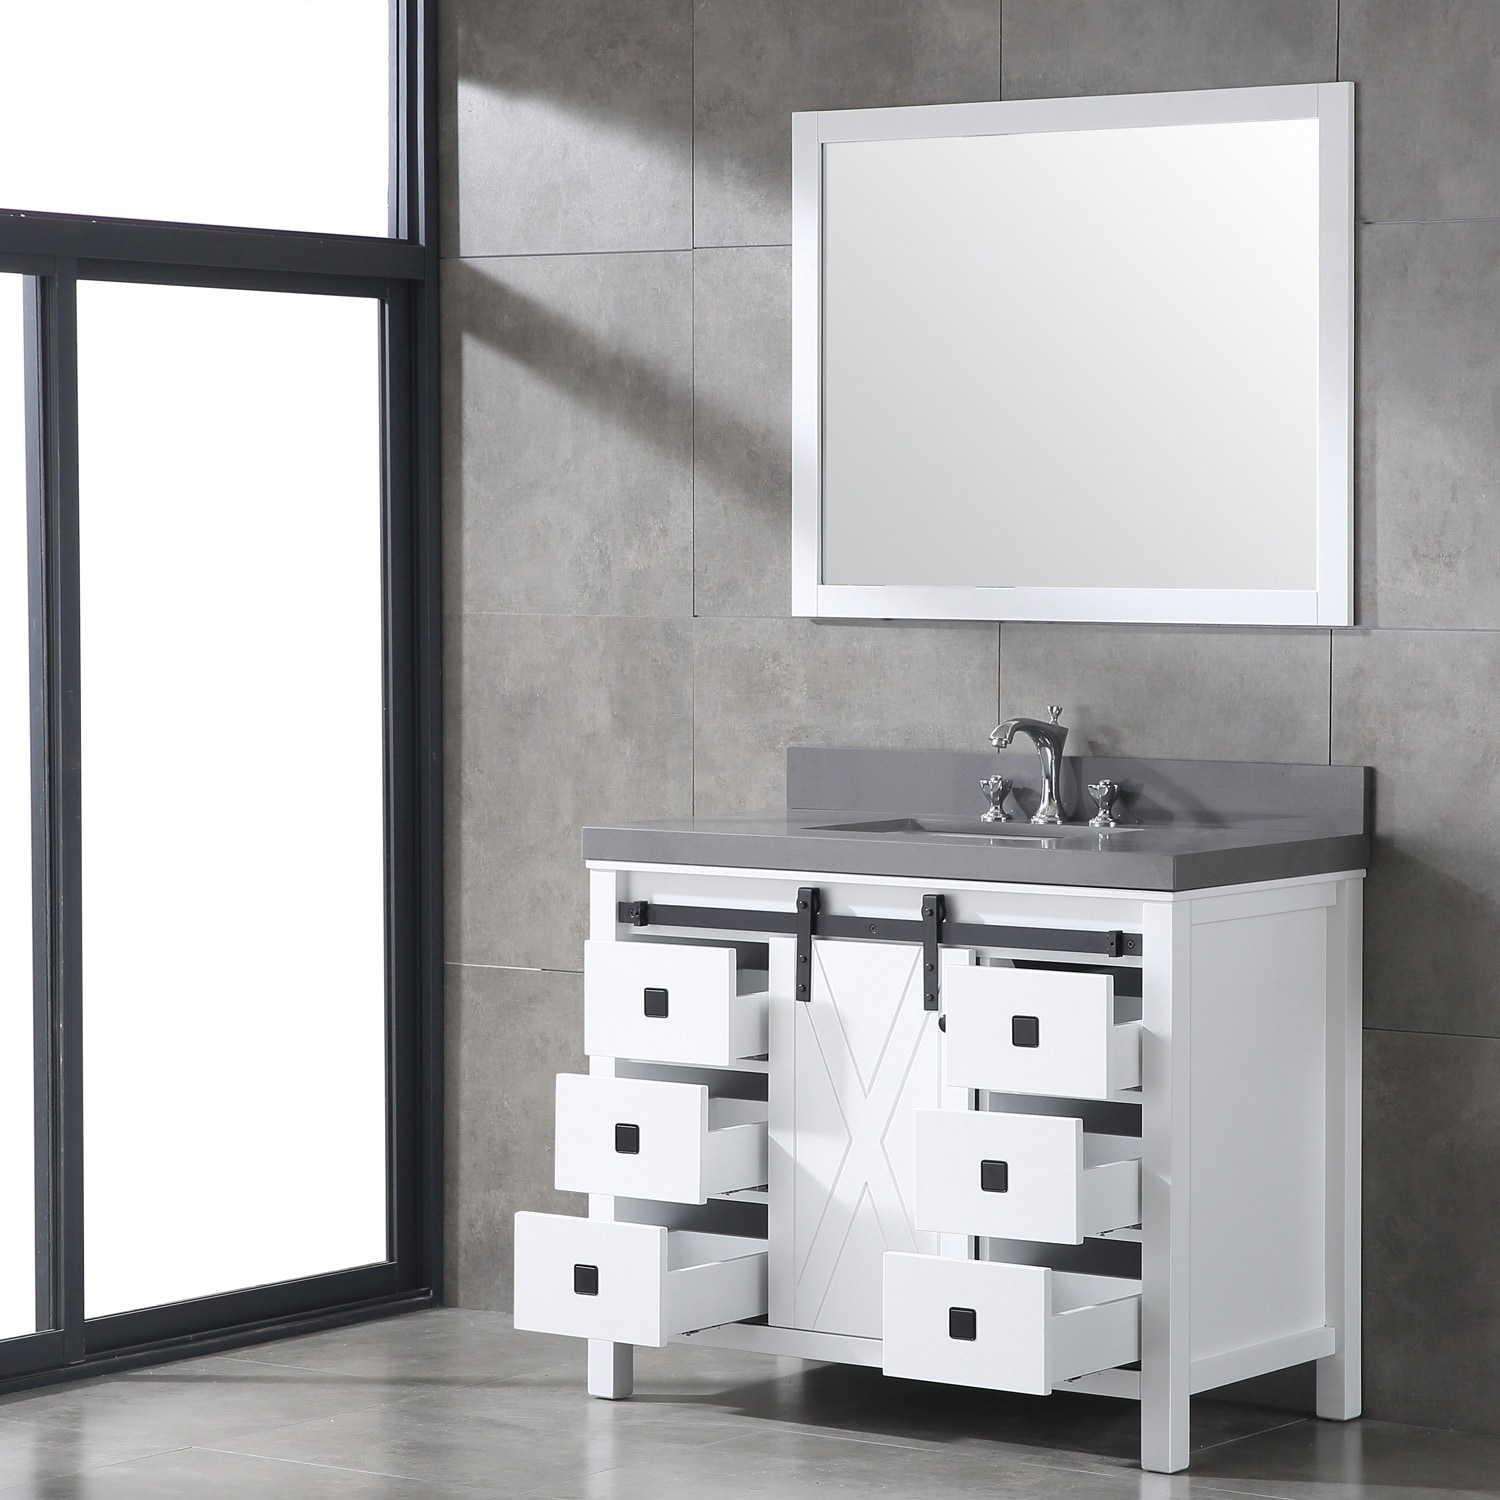 Shop Eviva Dallas 42 in. White Bathroom Vanity - Free Shipping Today ...